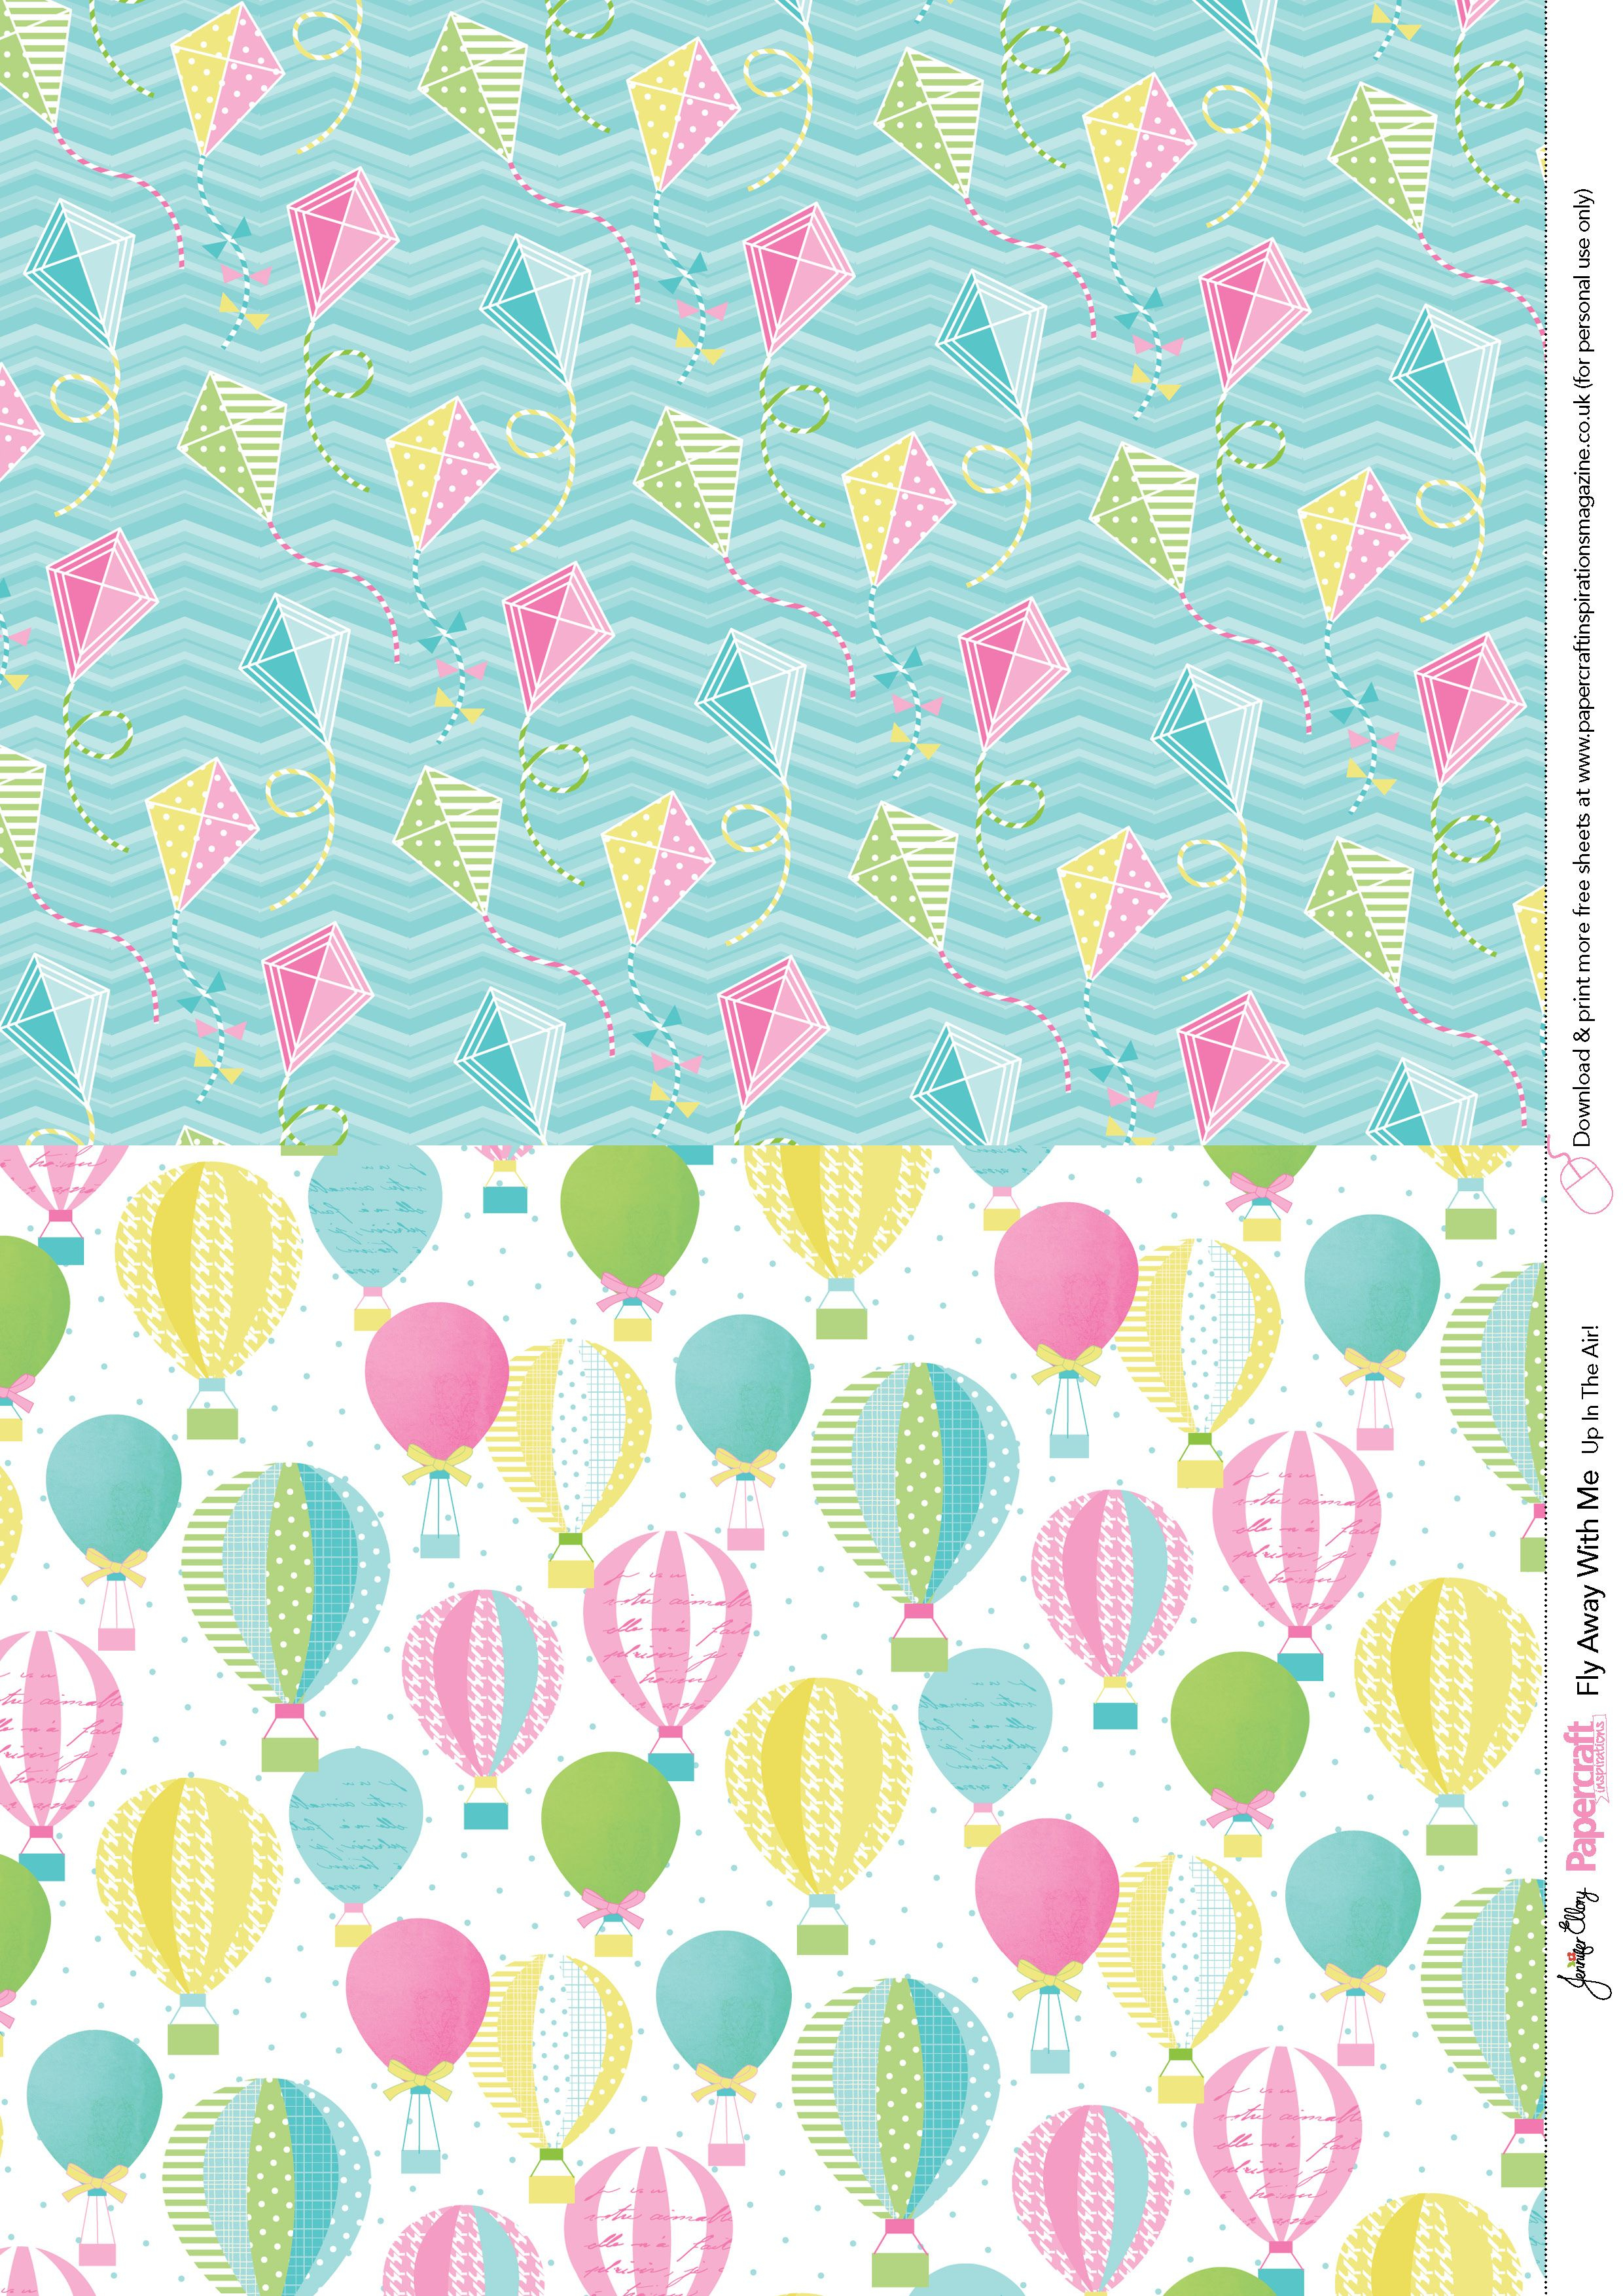 Fly Away With Me Free Printables From Papercraft Inspirations 138 - Free Printable Scrapbook Paper